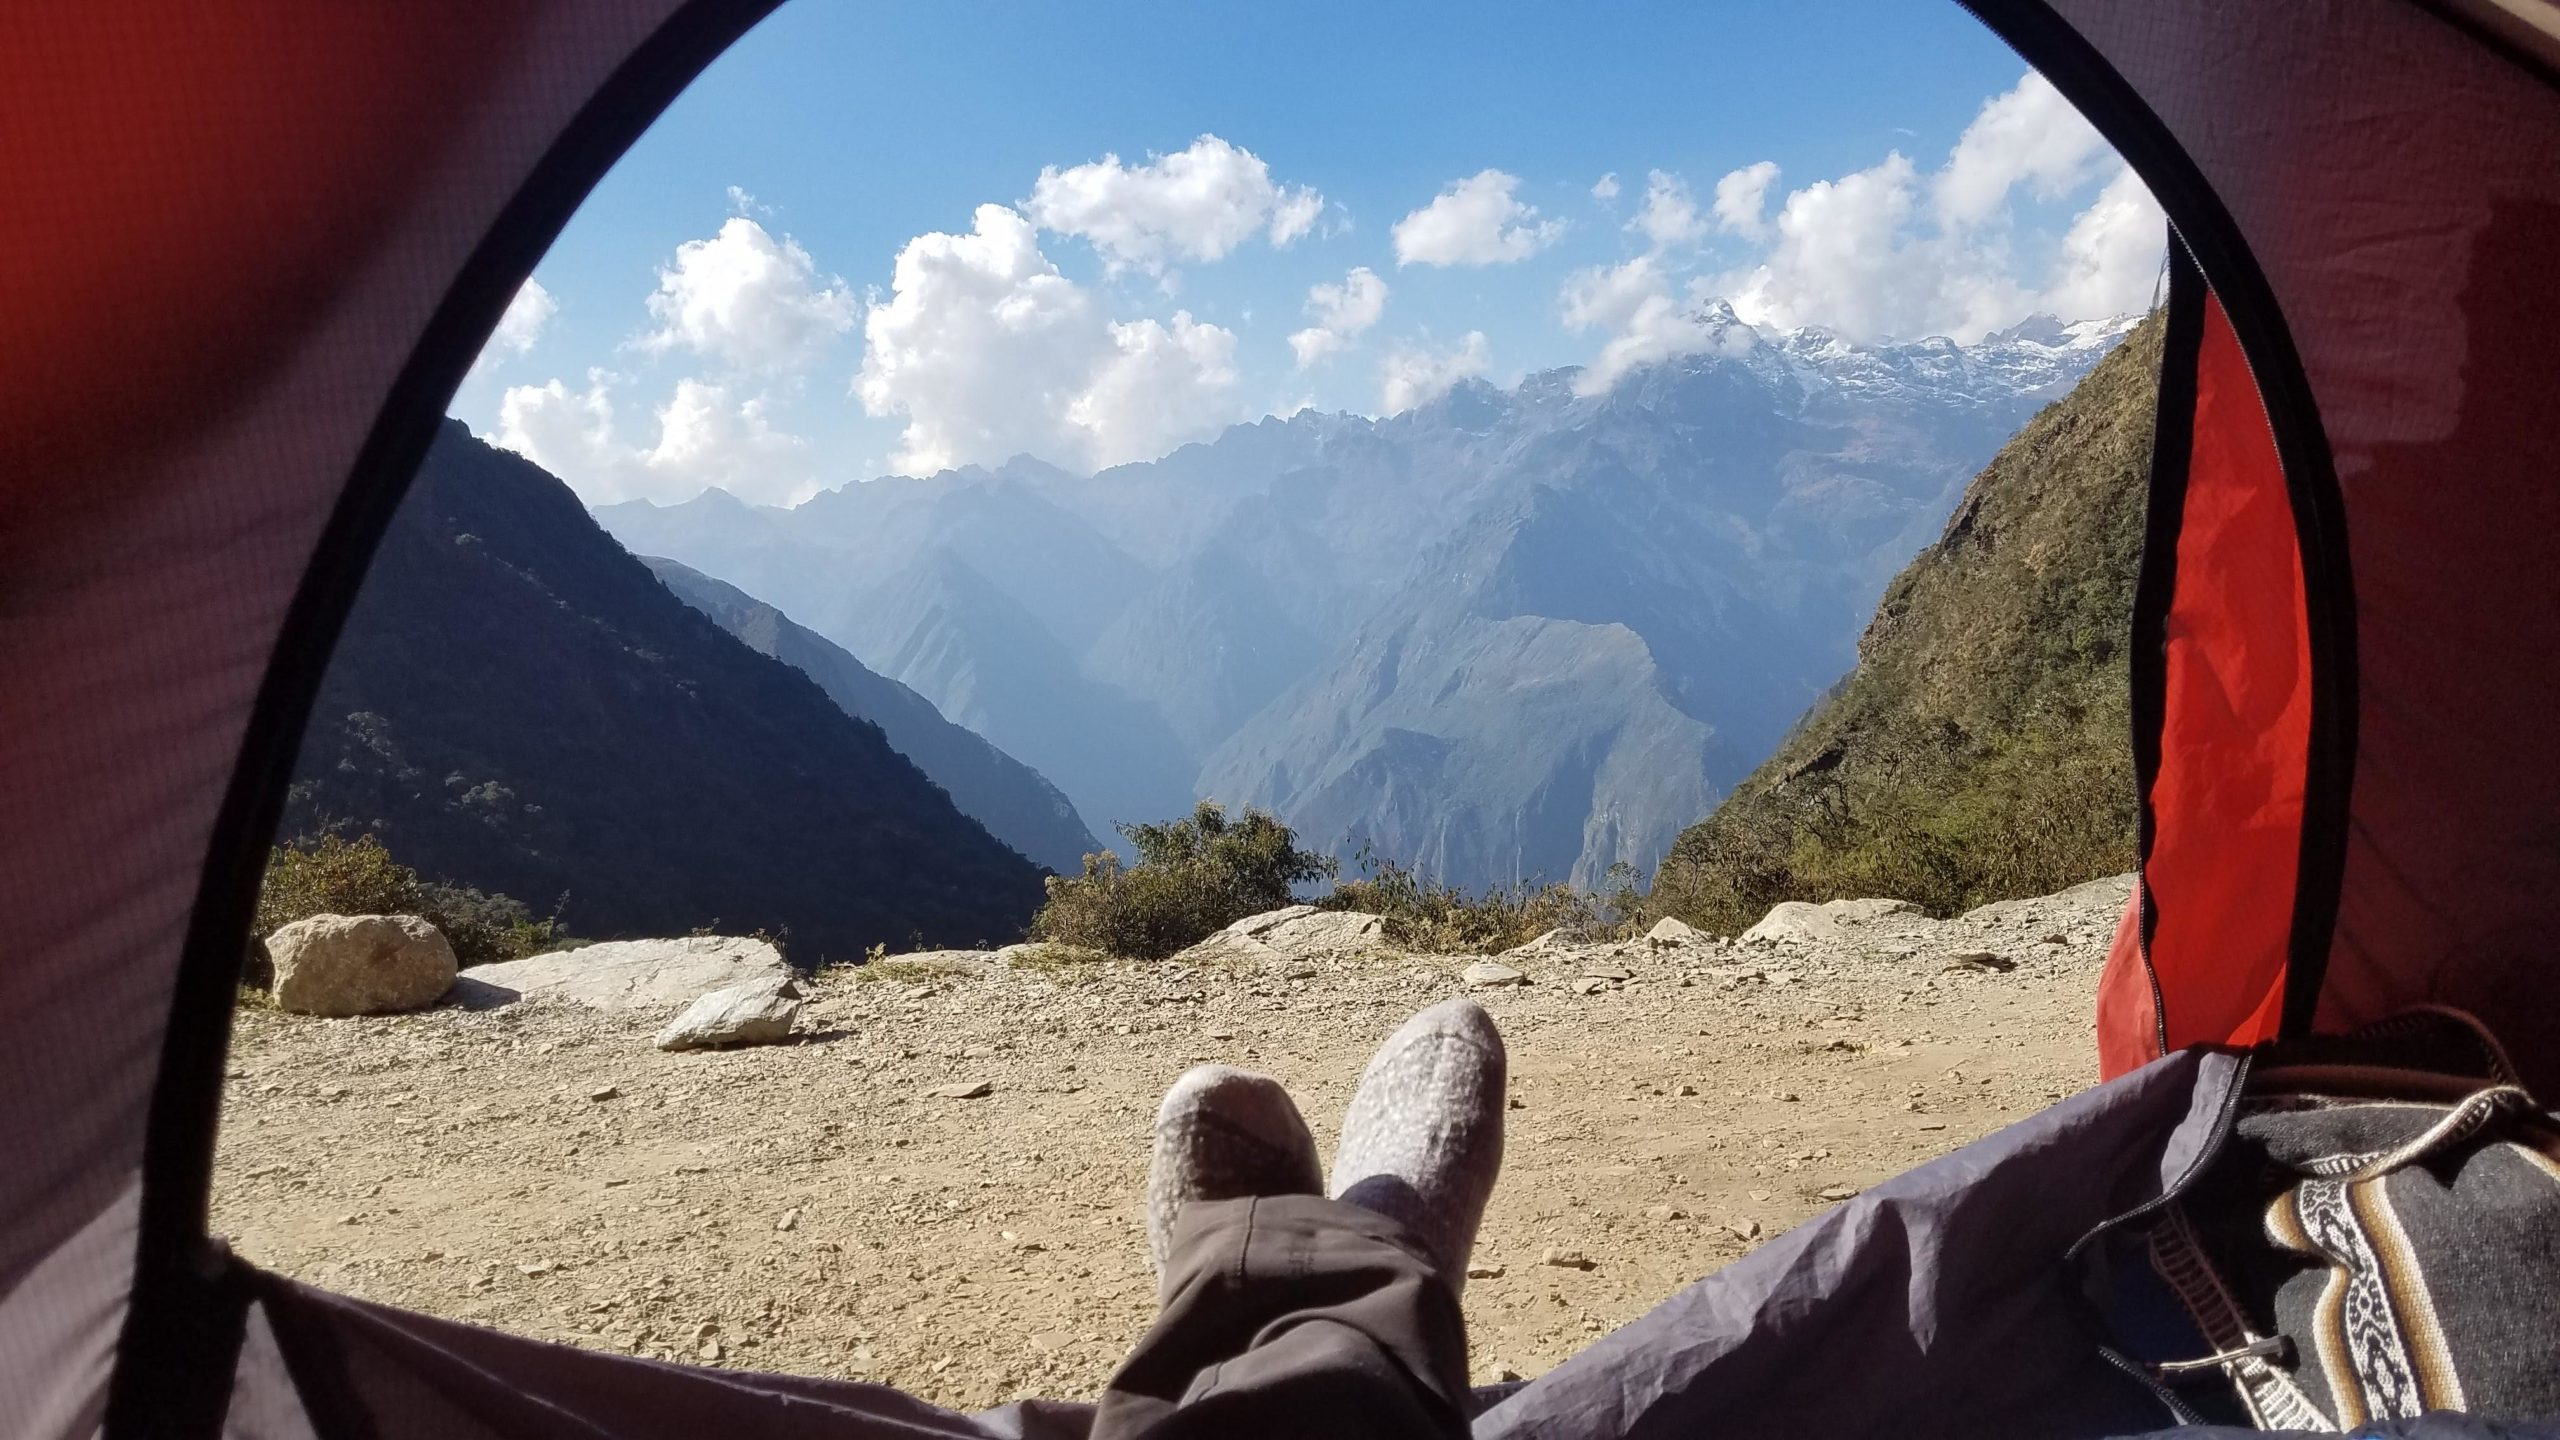 view from a dome tent of crossed feet and views looking out and down the valley